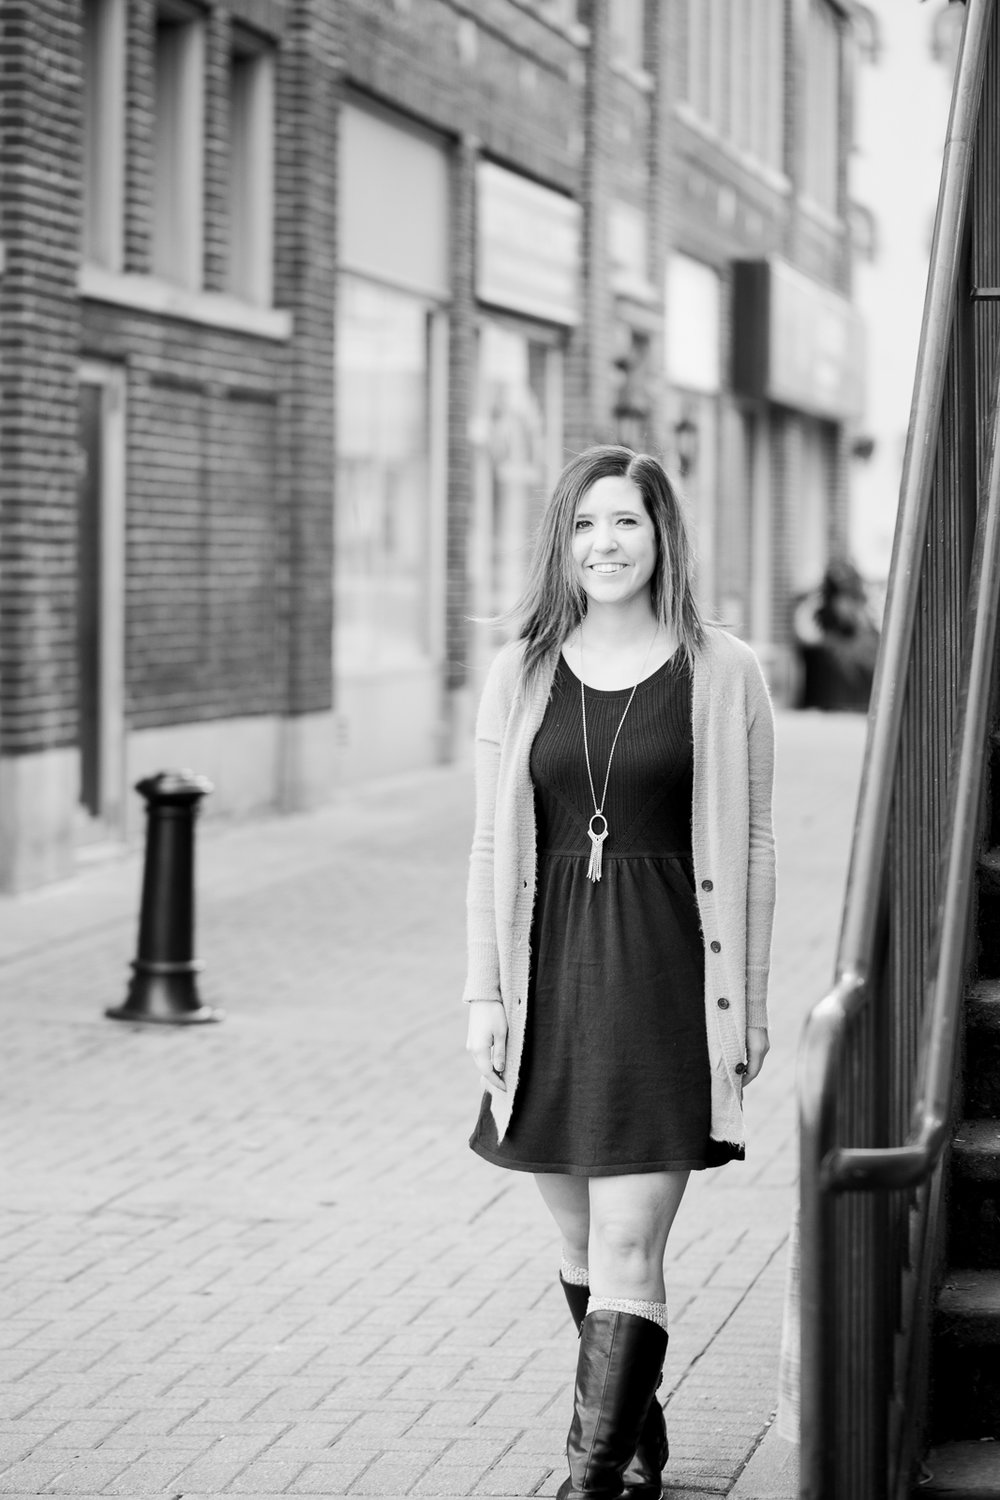 Senior pictures in downtown Wooster, Ohio by Cleveland Senior Photographer Matt Erickson Photography